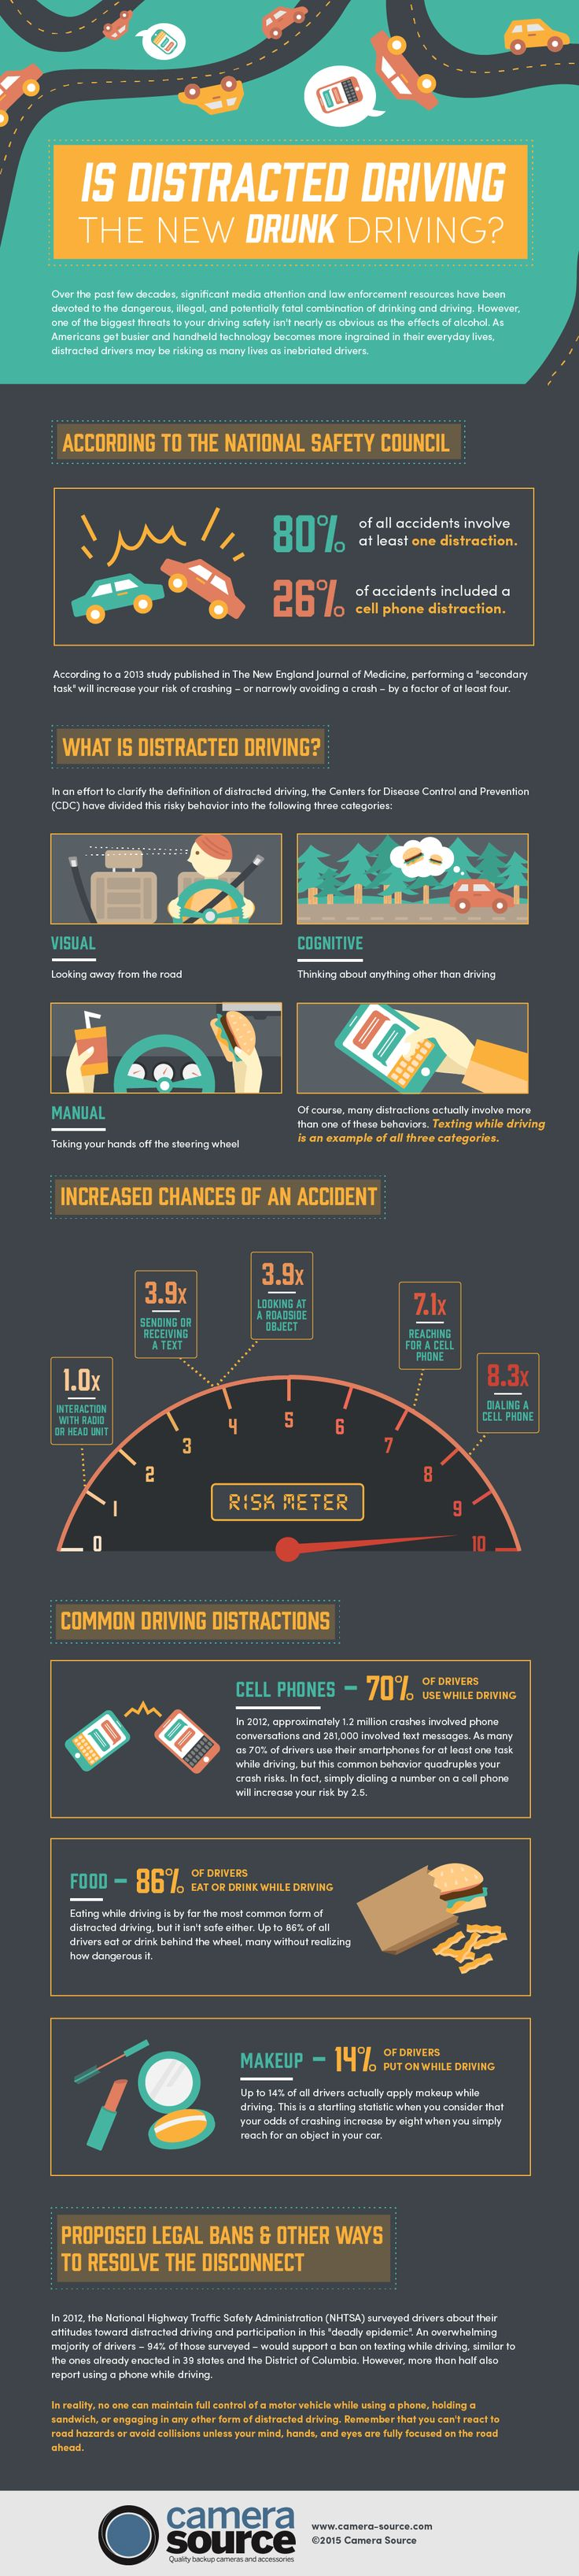 best ideas about drunk driving advertising ads is distracted driving the new drunk driving infographic